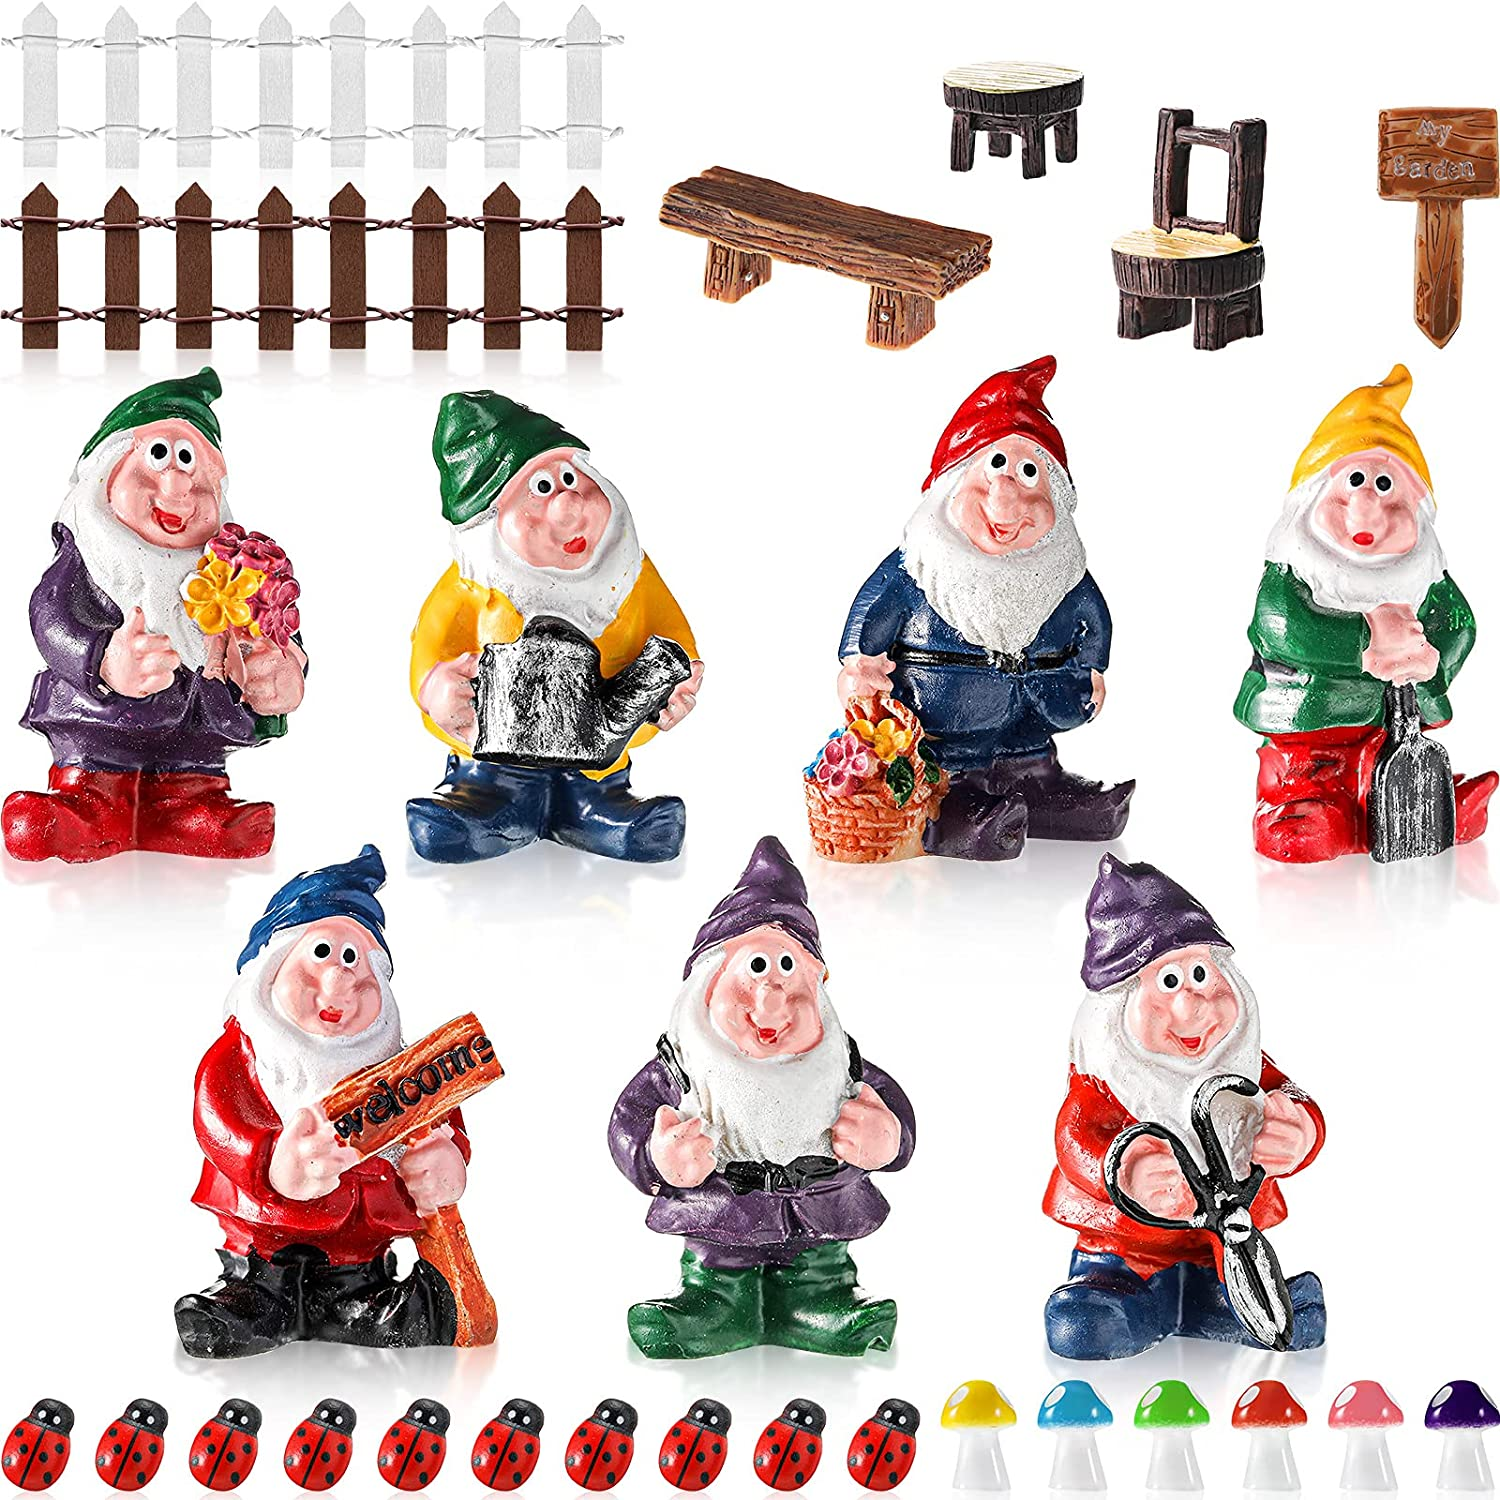 Challenge the lowest price of Japan Skylety 28 Pieces Max 61% OFF Fairy Garden Miniature Gnome Accessories Figur